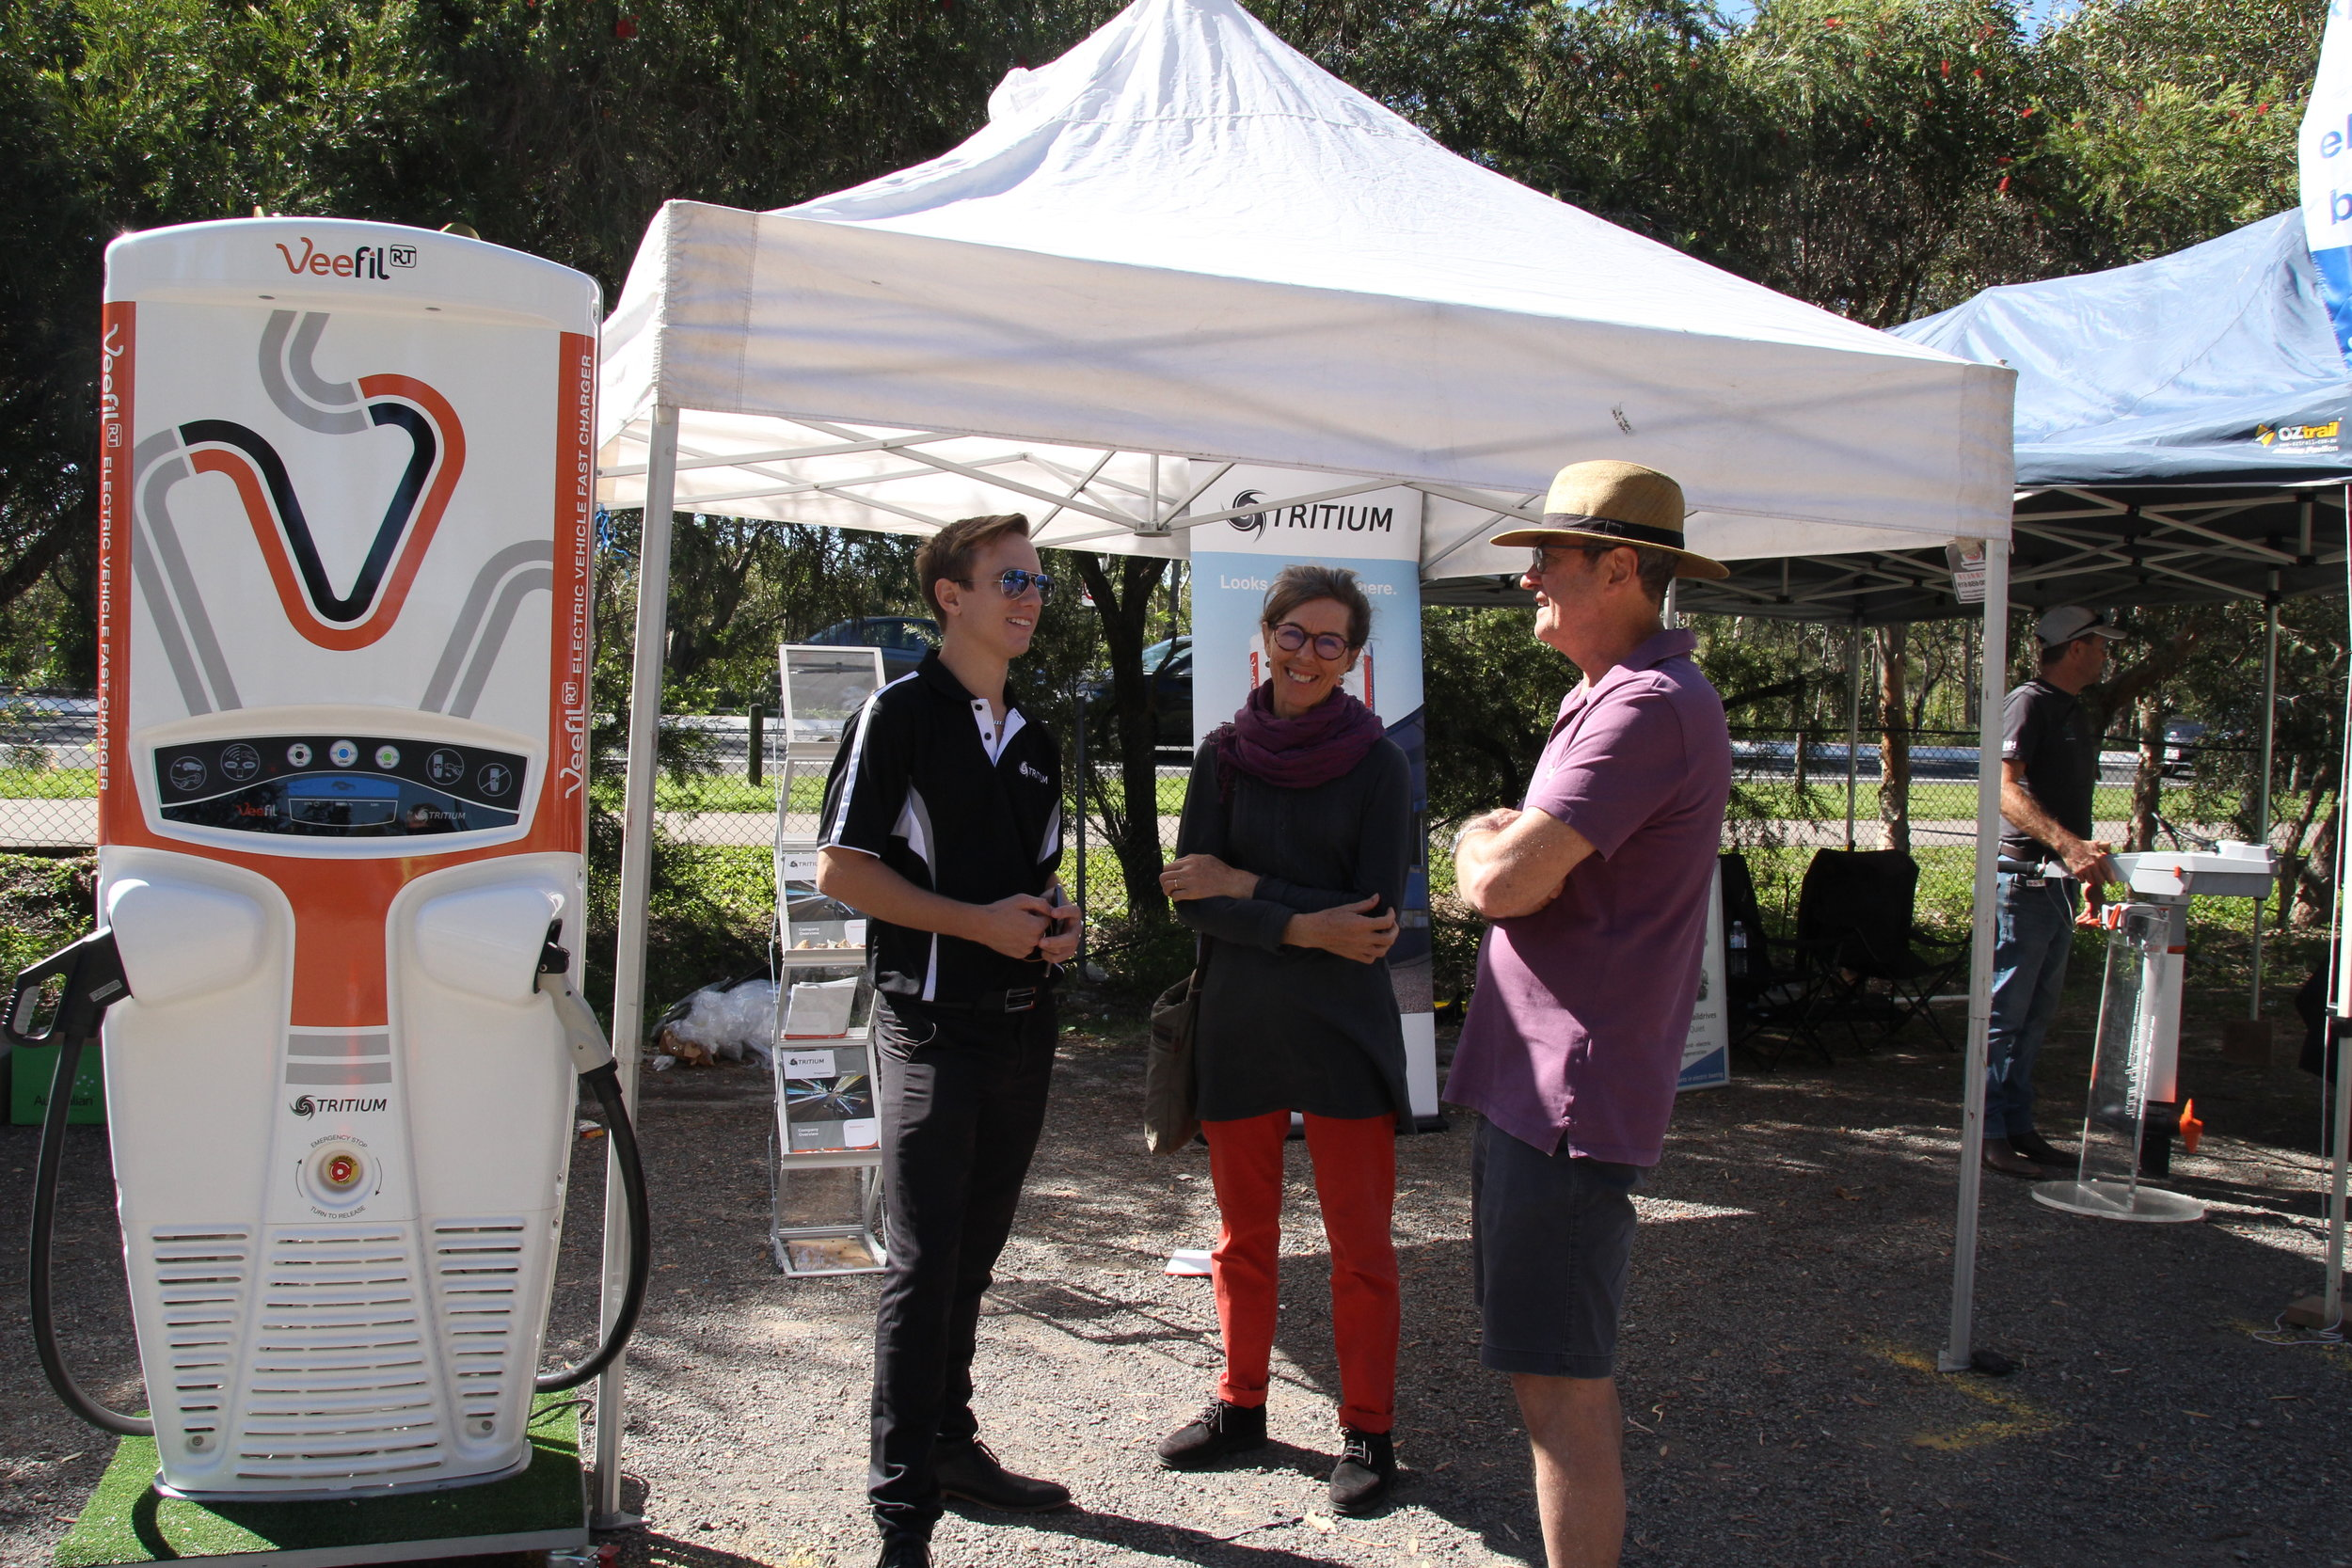 Noosa EV Expo - Thank you to all who attended this years Noosa EV Expo, it was a massive event with an even bigger range of exhibitors. It is heartening to see the number of people interested in learning more about sustainable transport options.